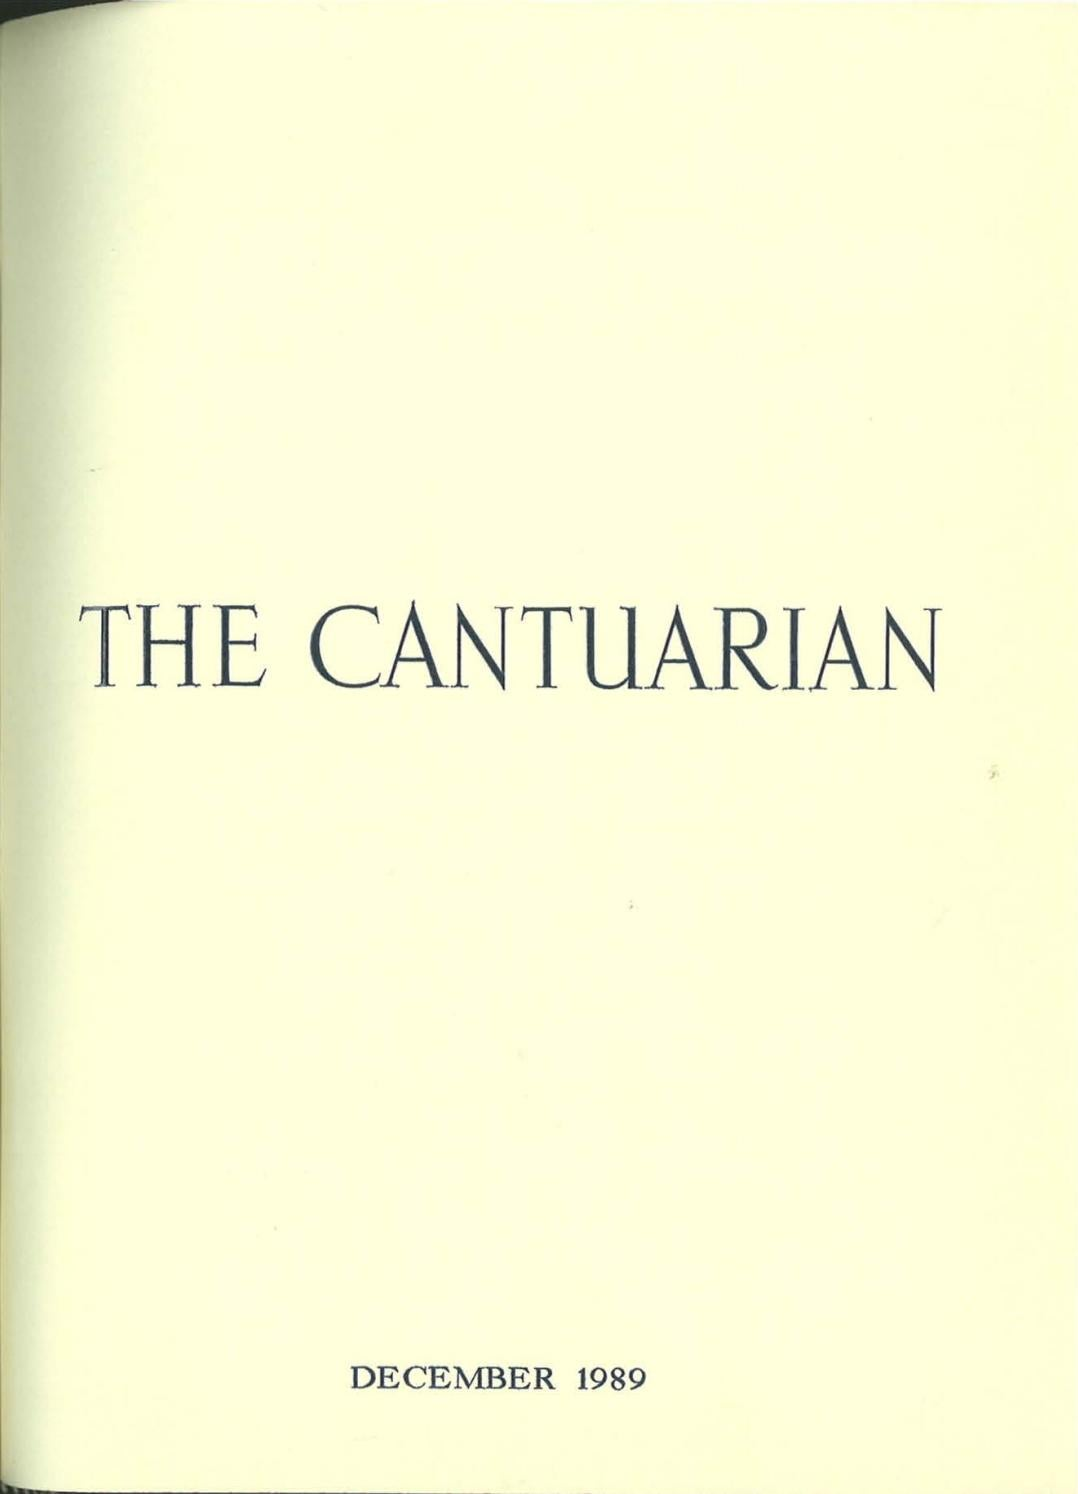 The Cantuarian December 1989 - August 1990 by OKS